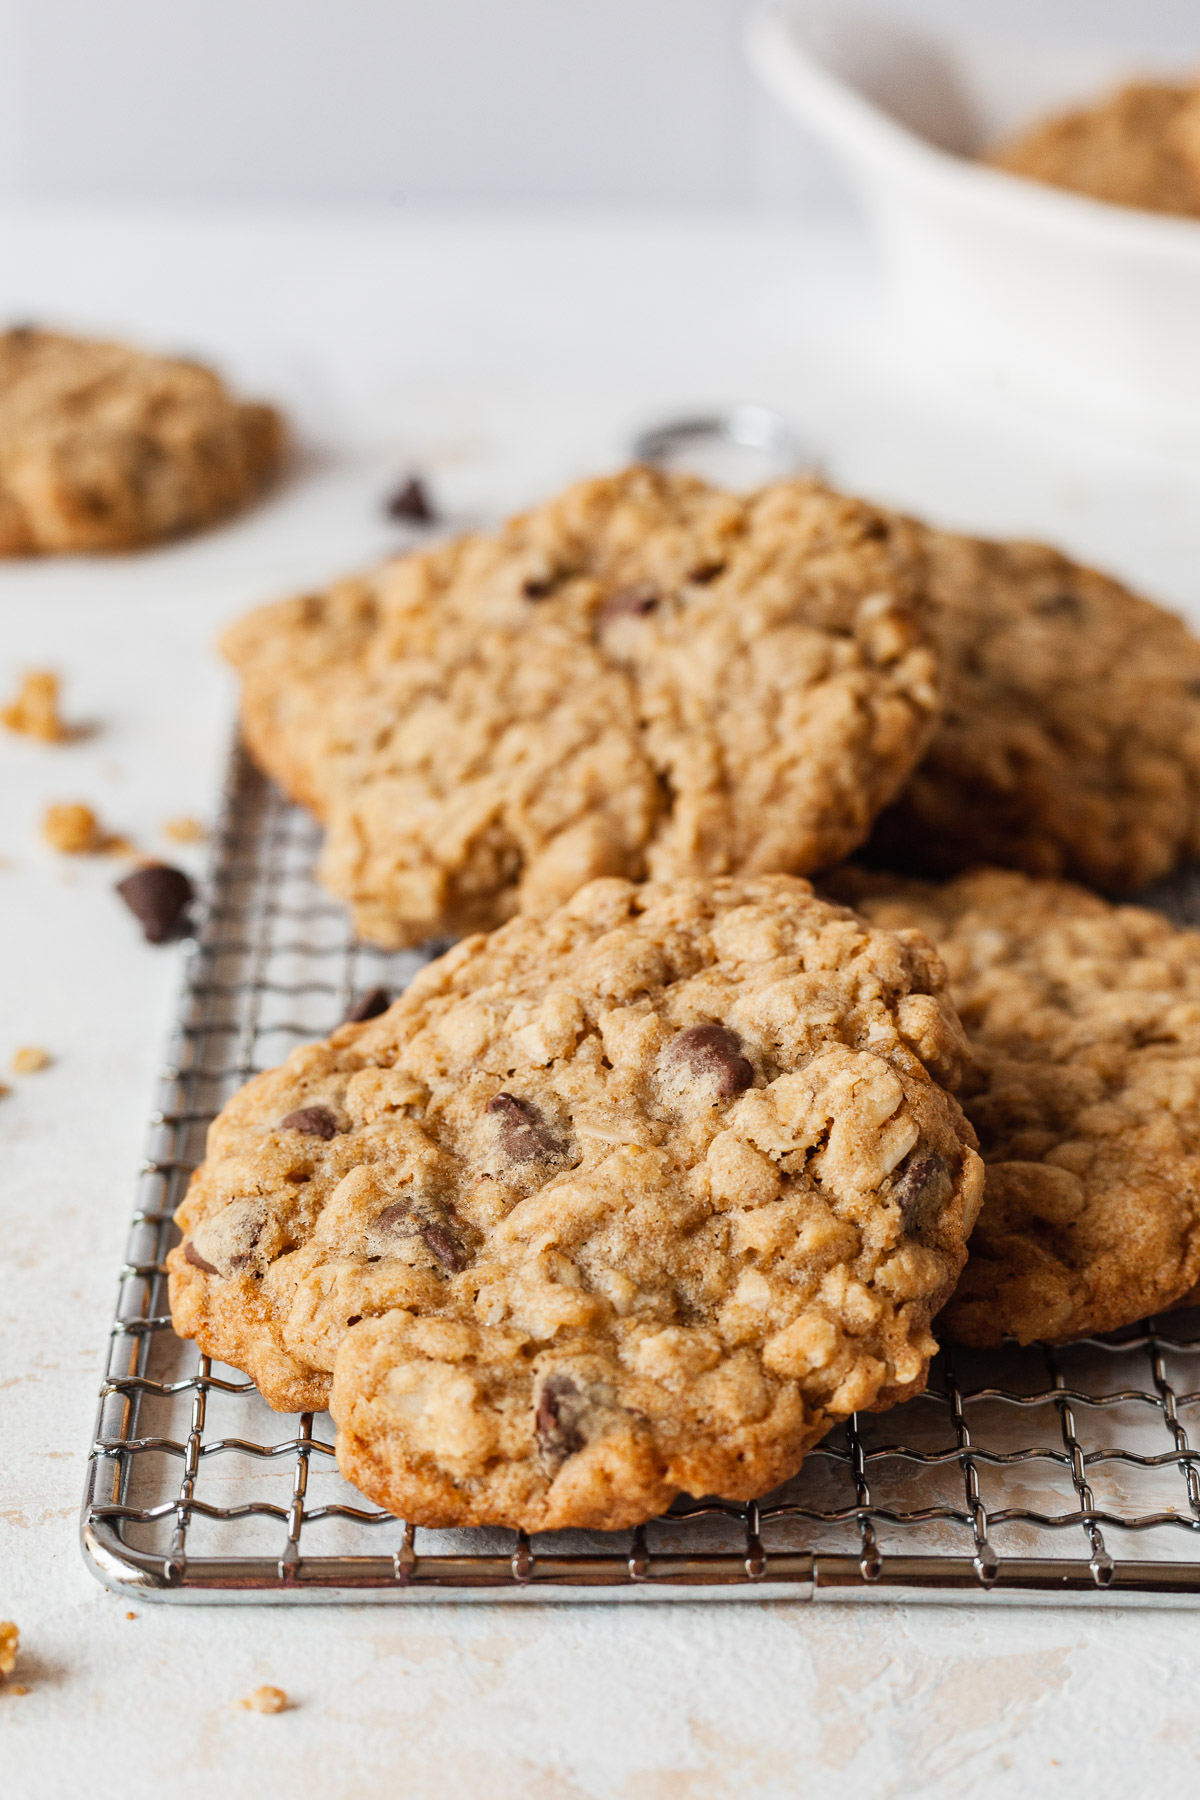 image of oatmeal chocolate chip cookies on a cooking rack